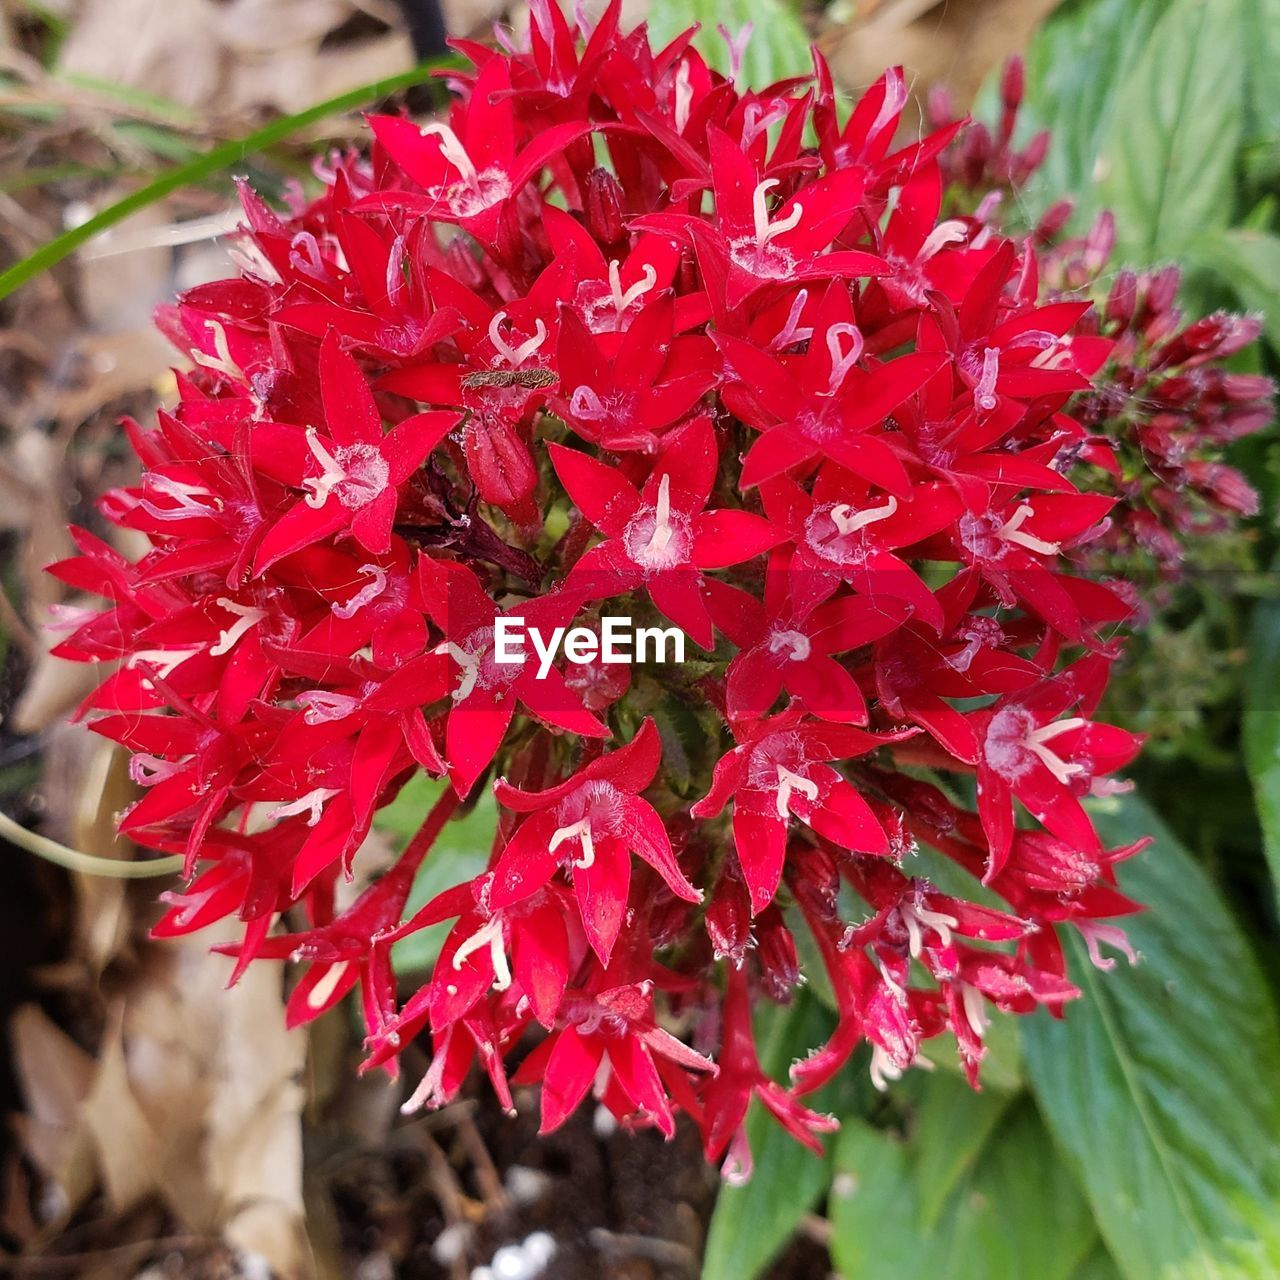 flower, flowering plant, beauty in nature, red, plant, vulnerability, fragility, petal, growth, freshness, close-up, flower head, inflorescence, nature, day, focus on foreground, no people, selective focus, botany, outdoors, springtime, bunch of flowers